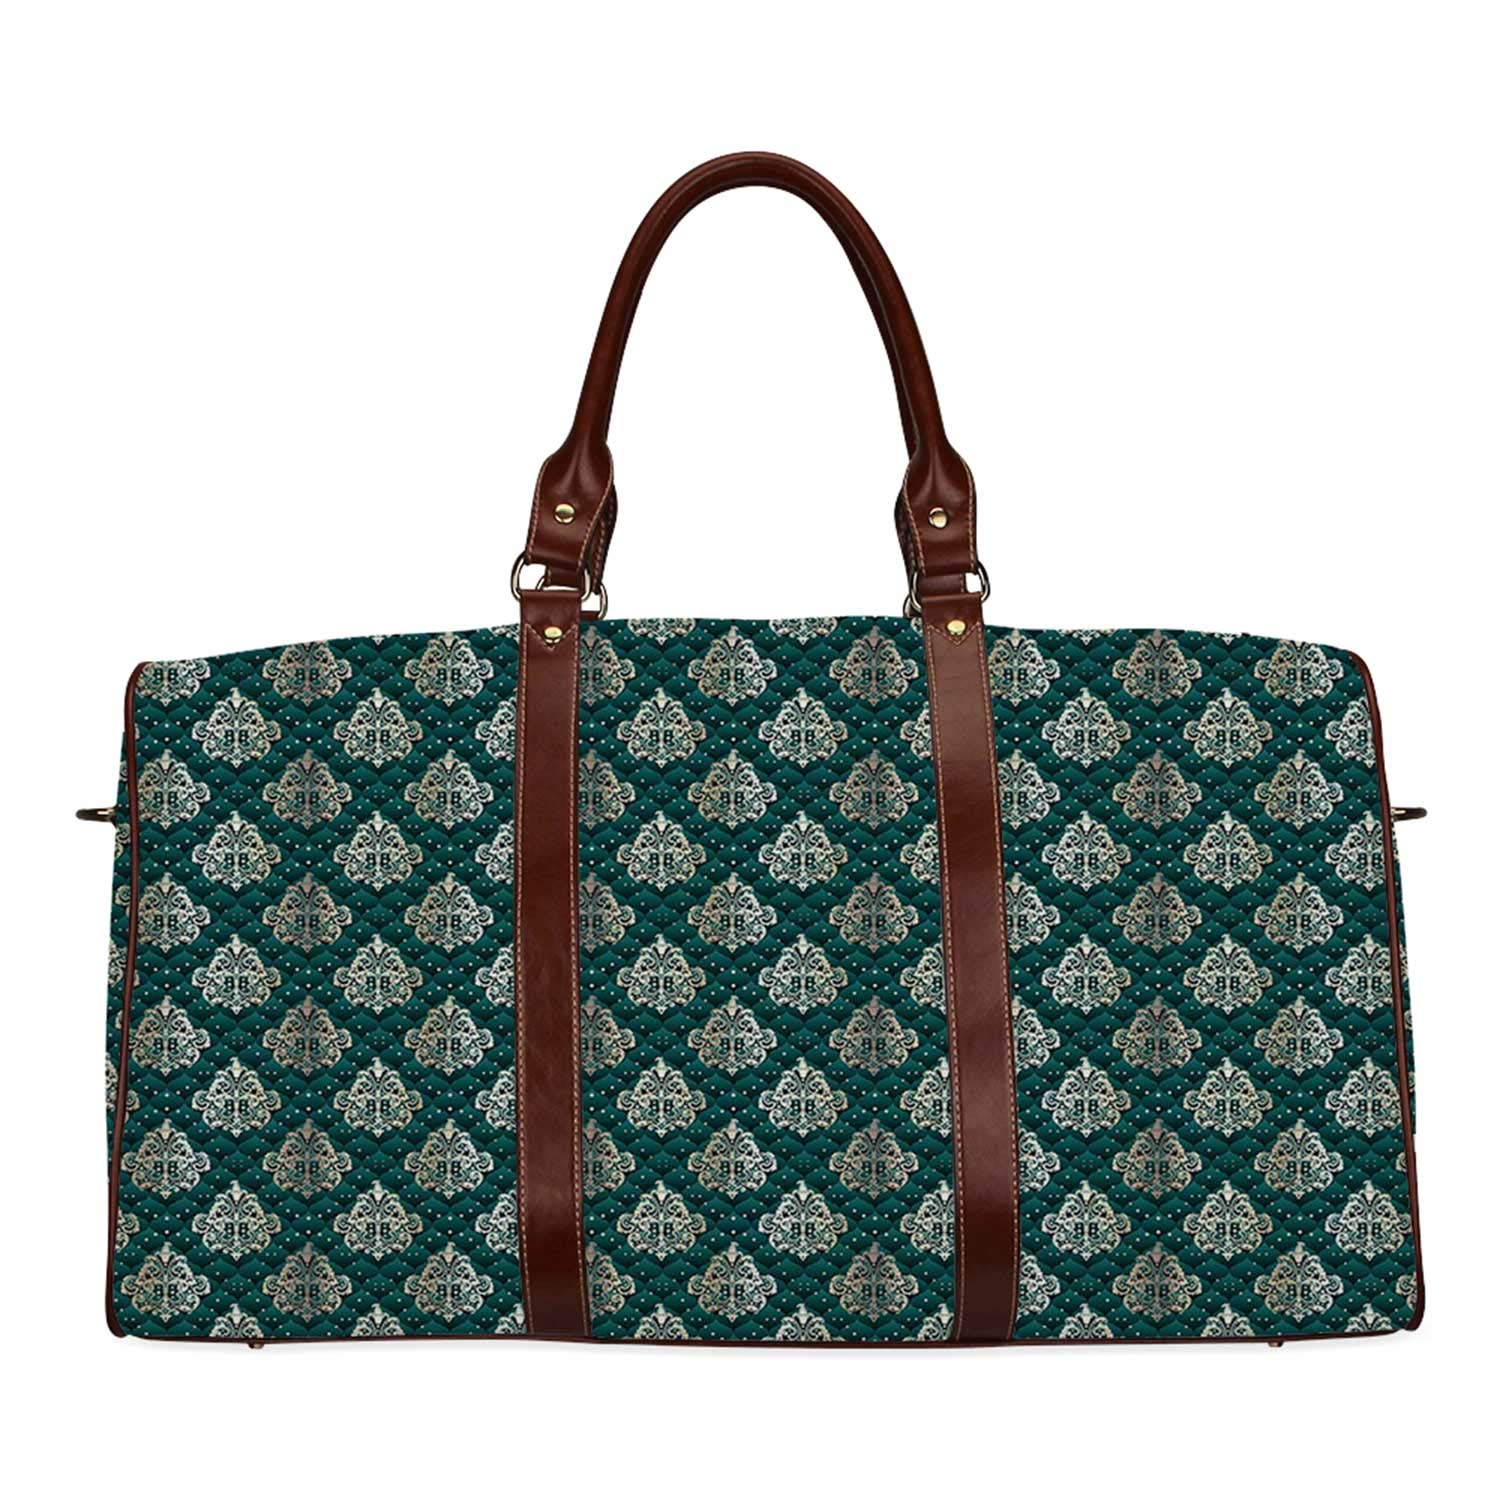 Damask Practicality Travel Bag,French Pattern Inspired by Rococo Era Designs Intricate Renaissance Motifs Decorative for School,20.8''L x 12''W x 9.8''H by YOLIYANA